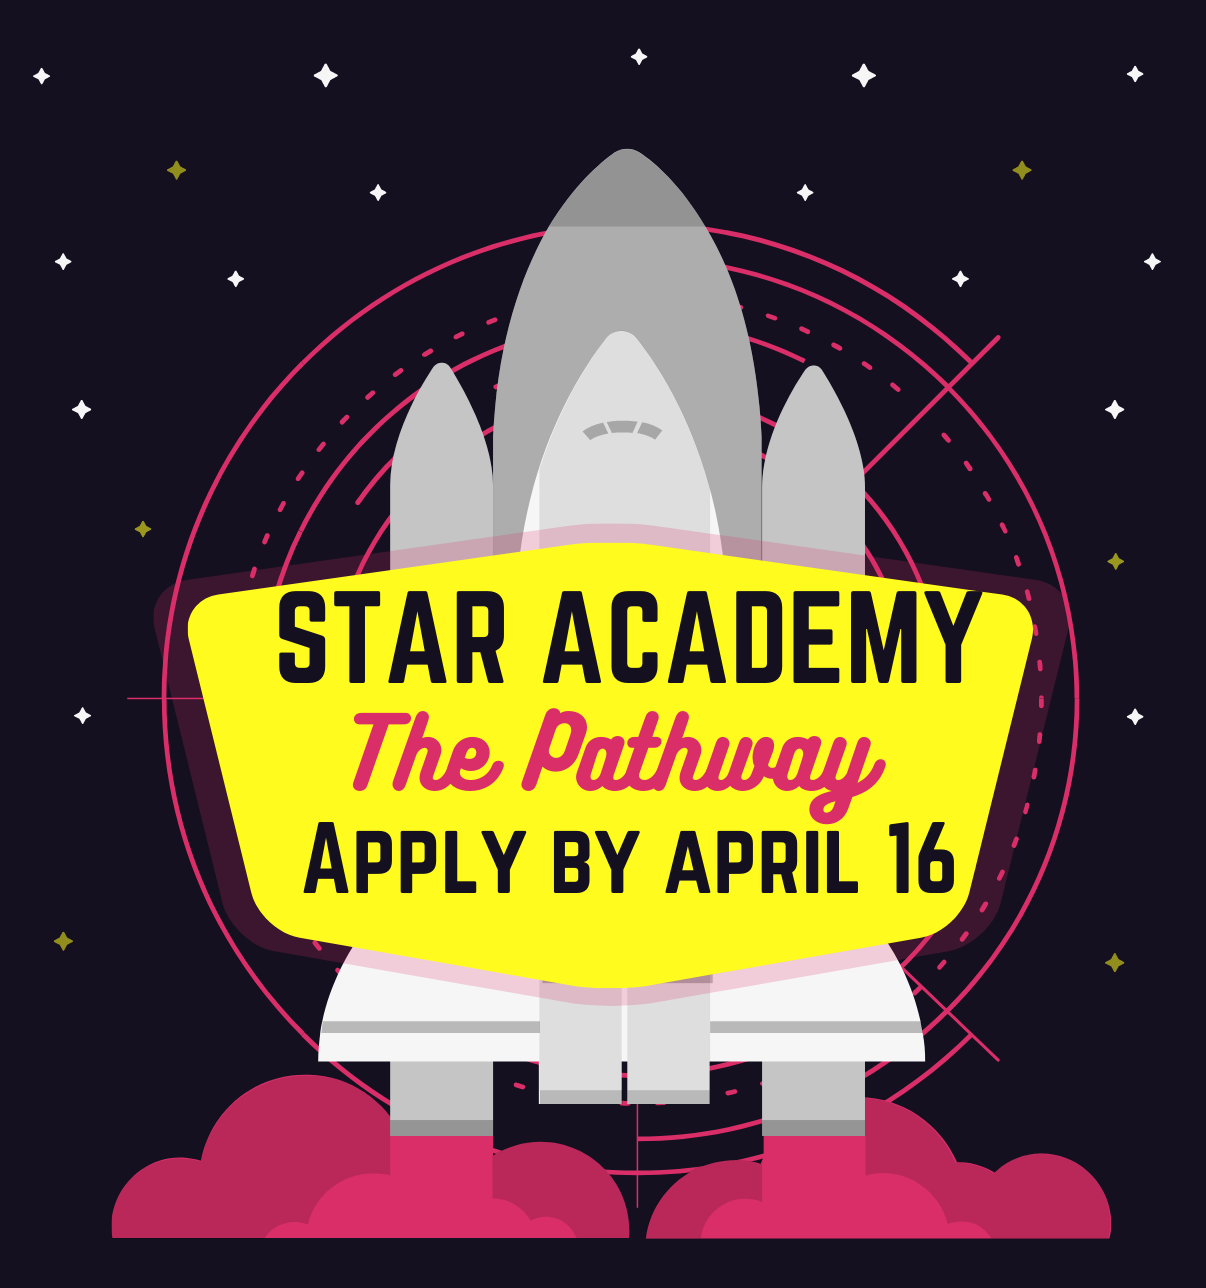 STAR Academy The Pathway Apply by April 16